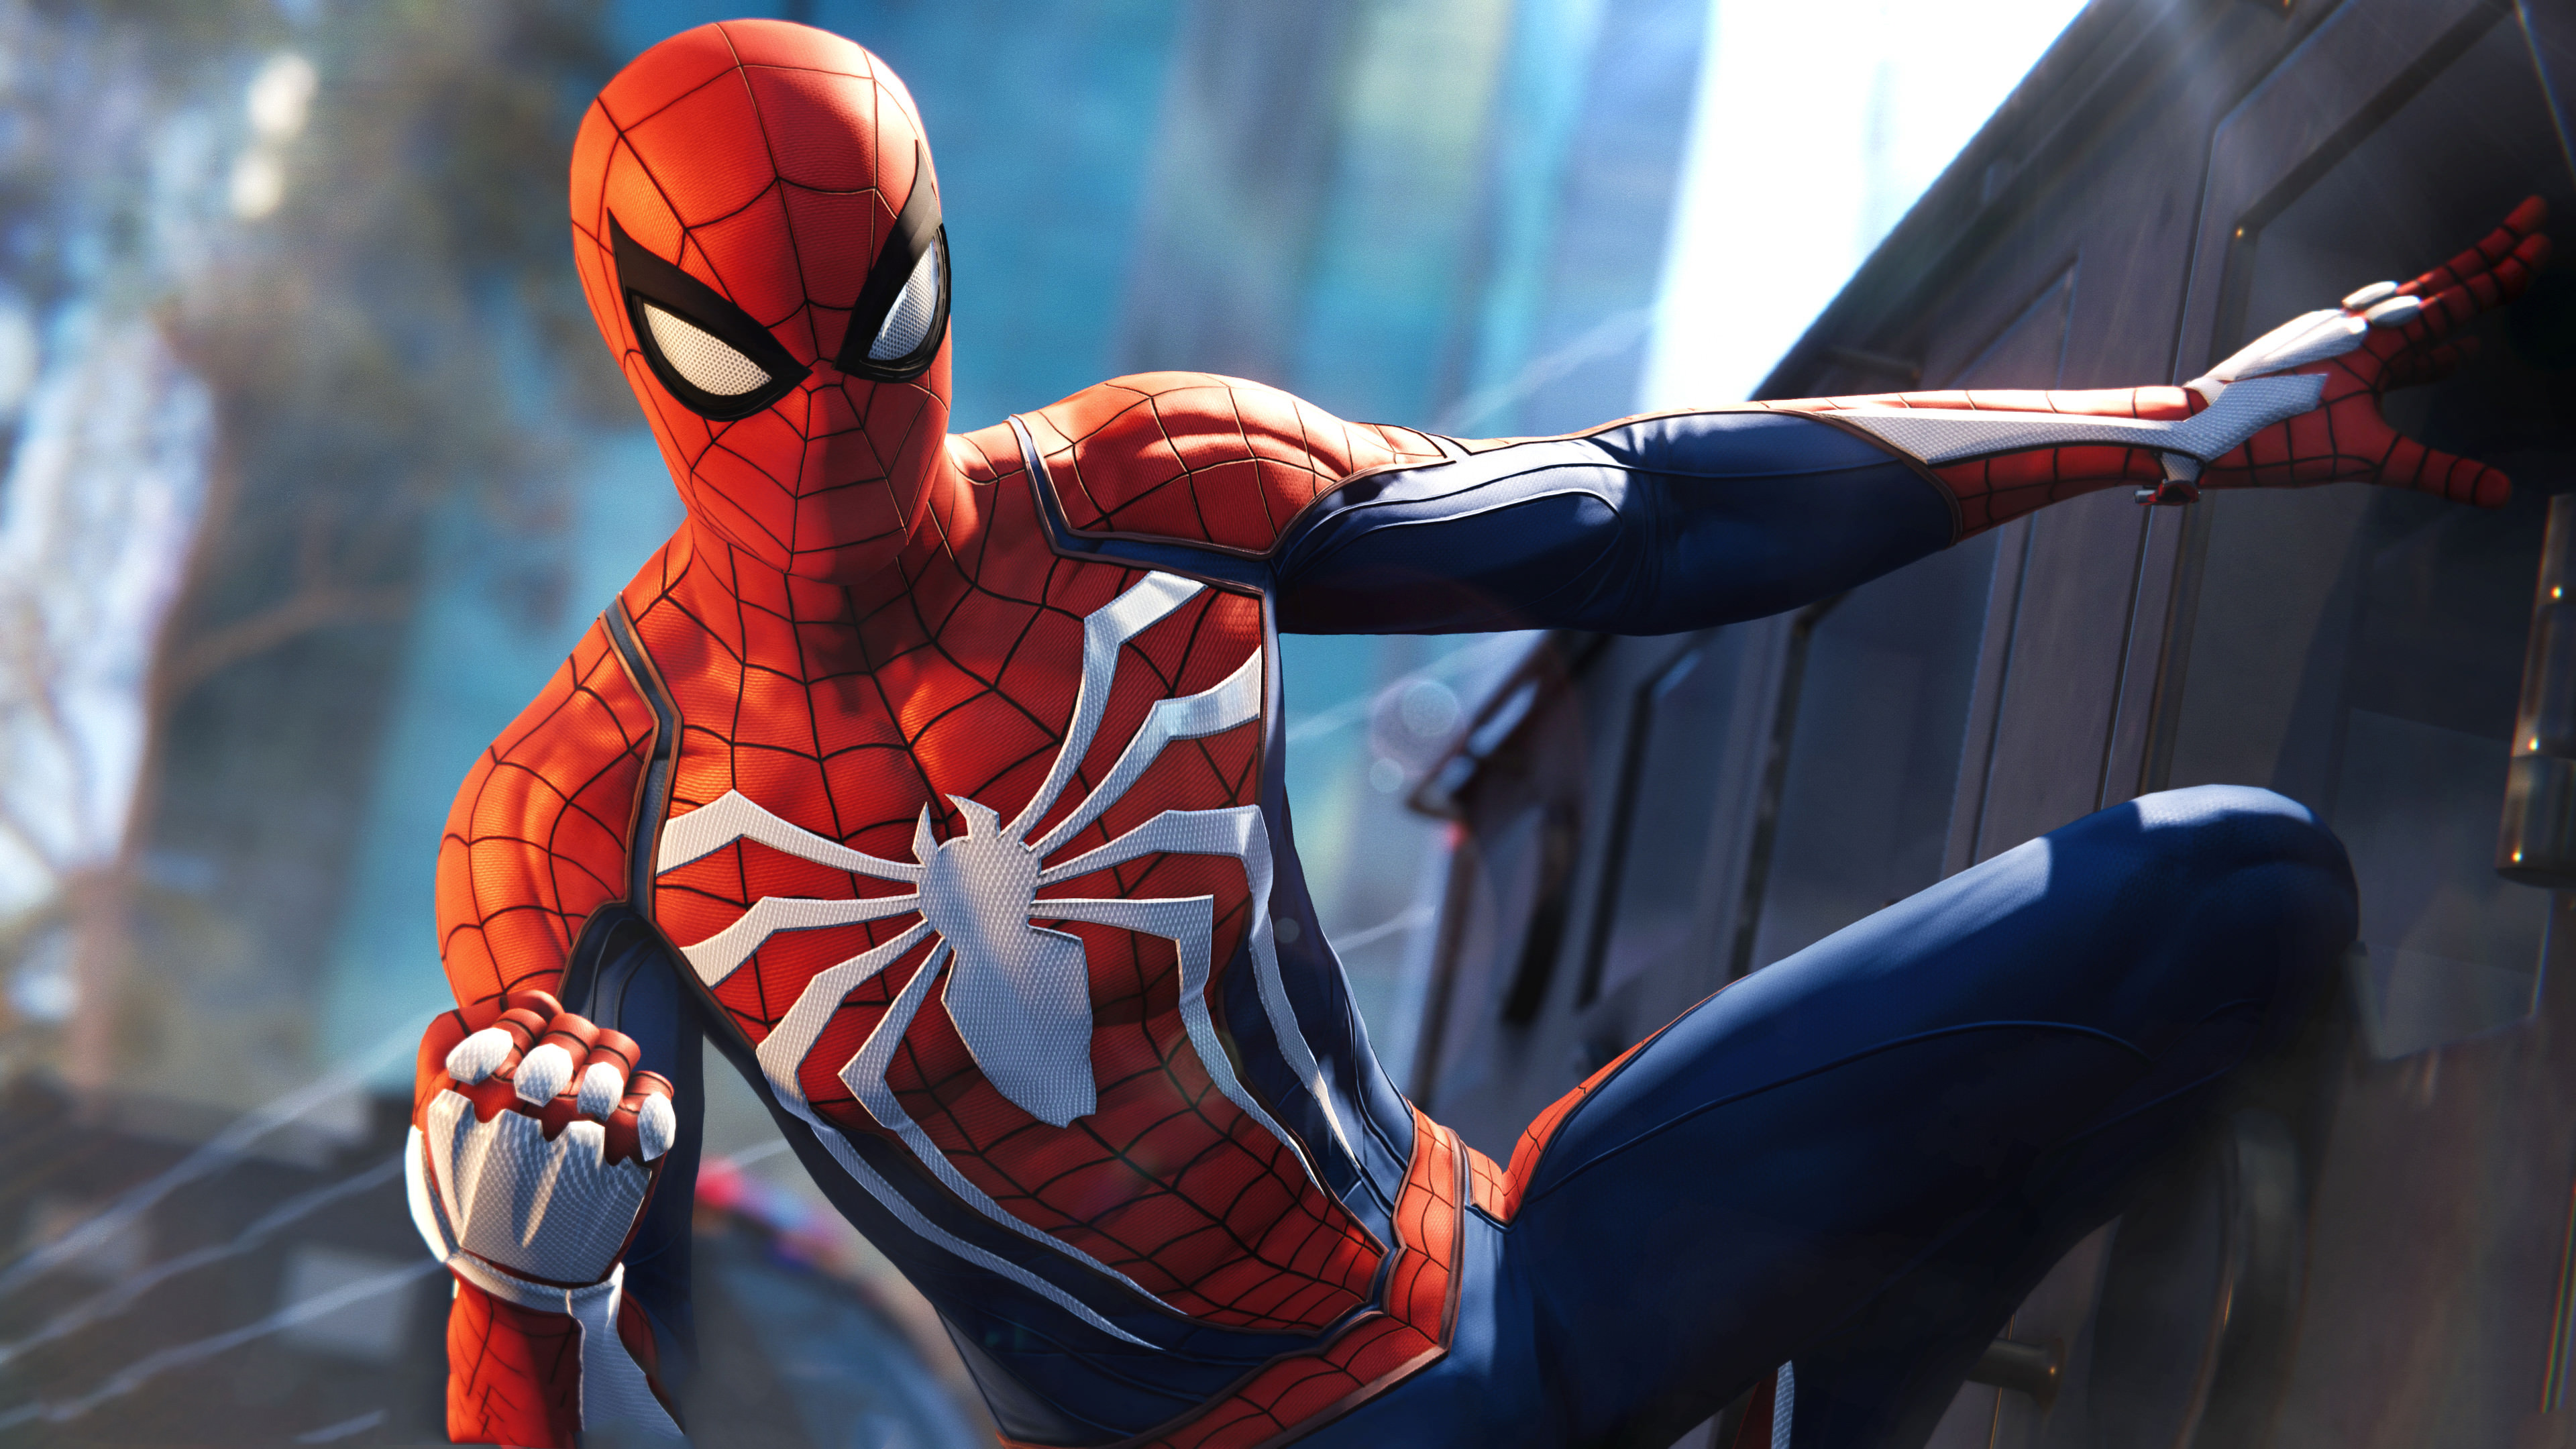 spider-man ps4 4k wallpapers   hd wallpapers